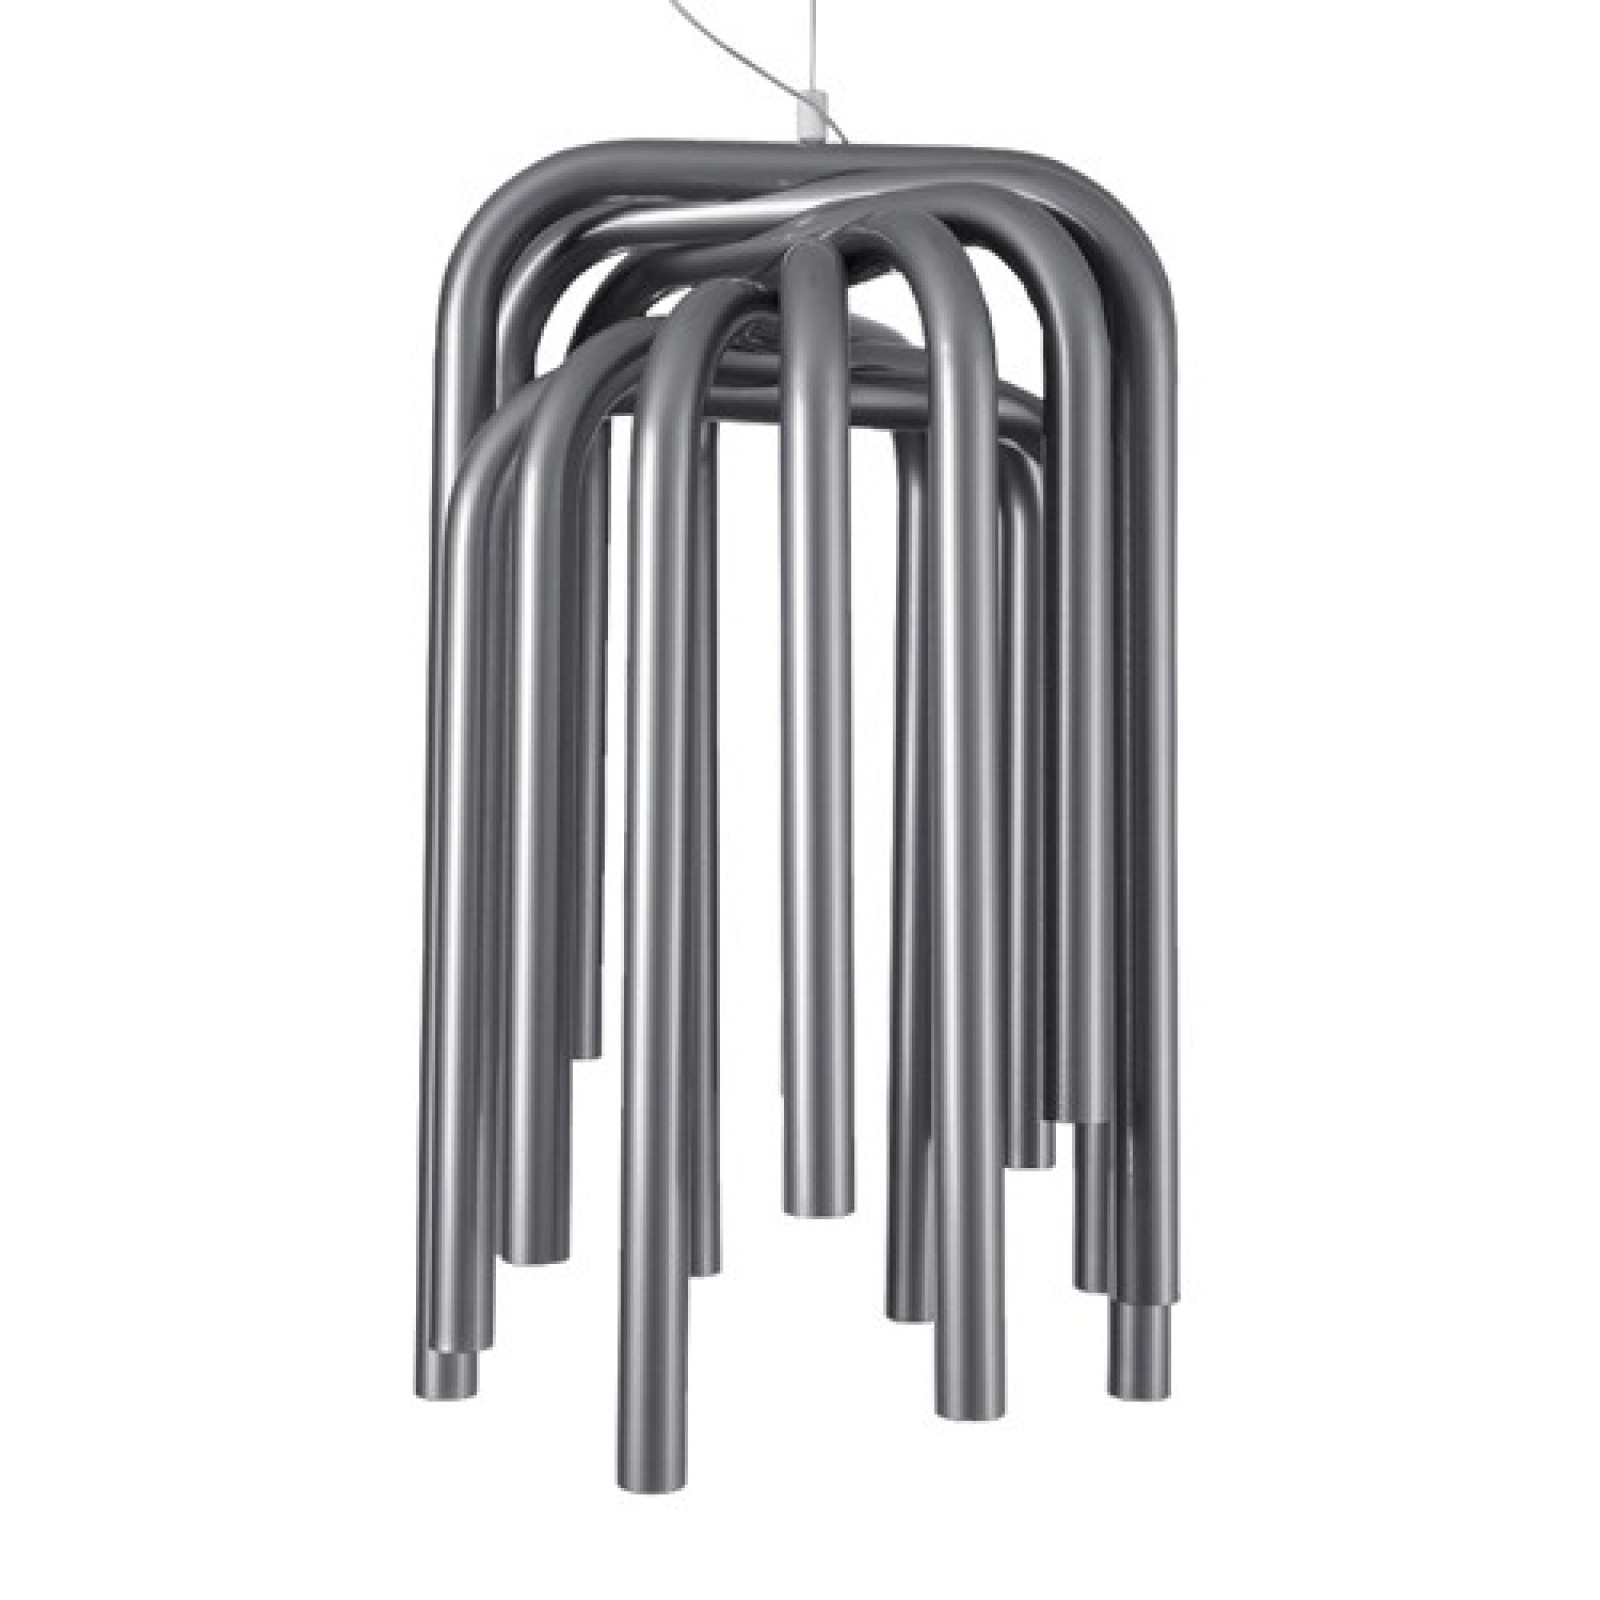 Pipes Ceiling Lamp - Karboxx